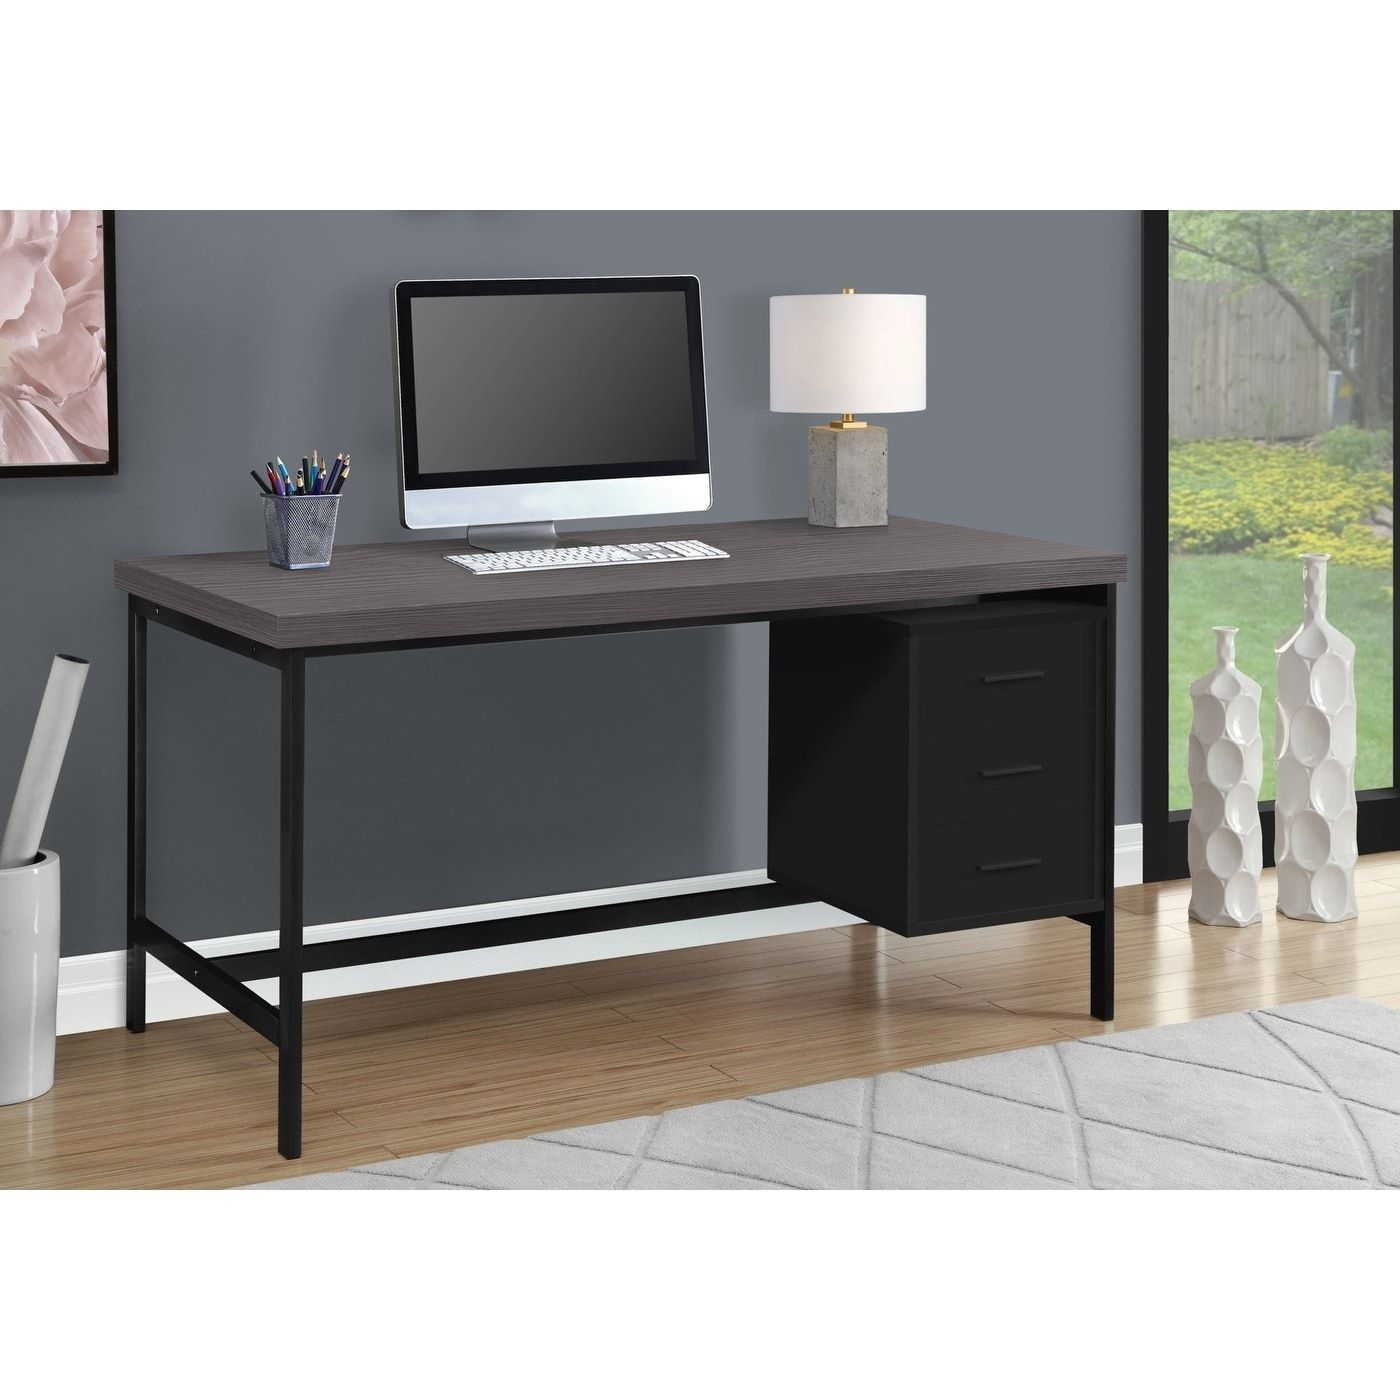 Axess Computer Desk With Hutch 106 Union